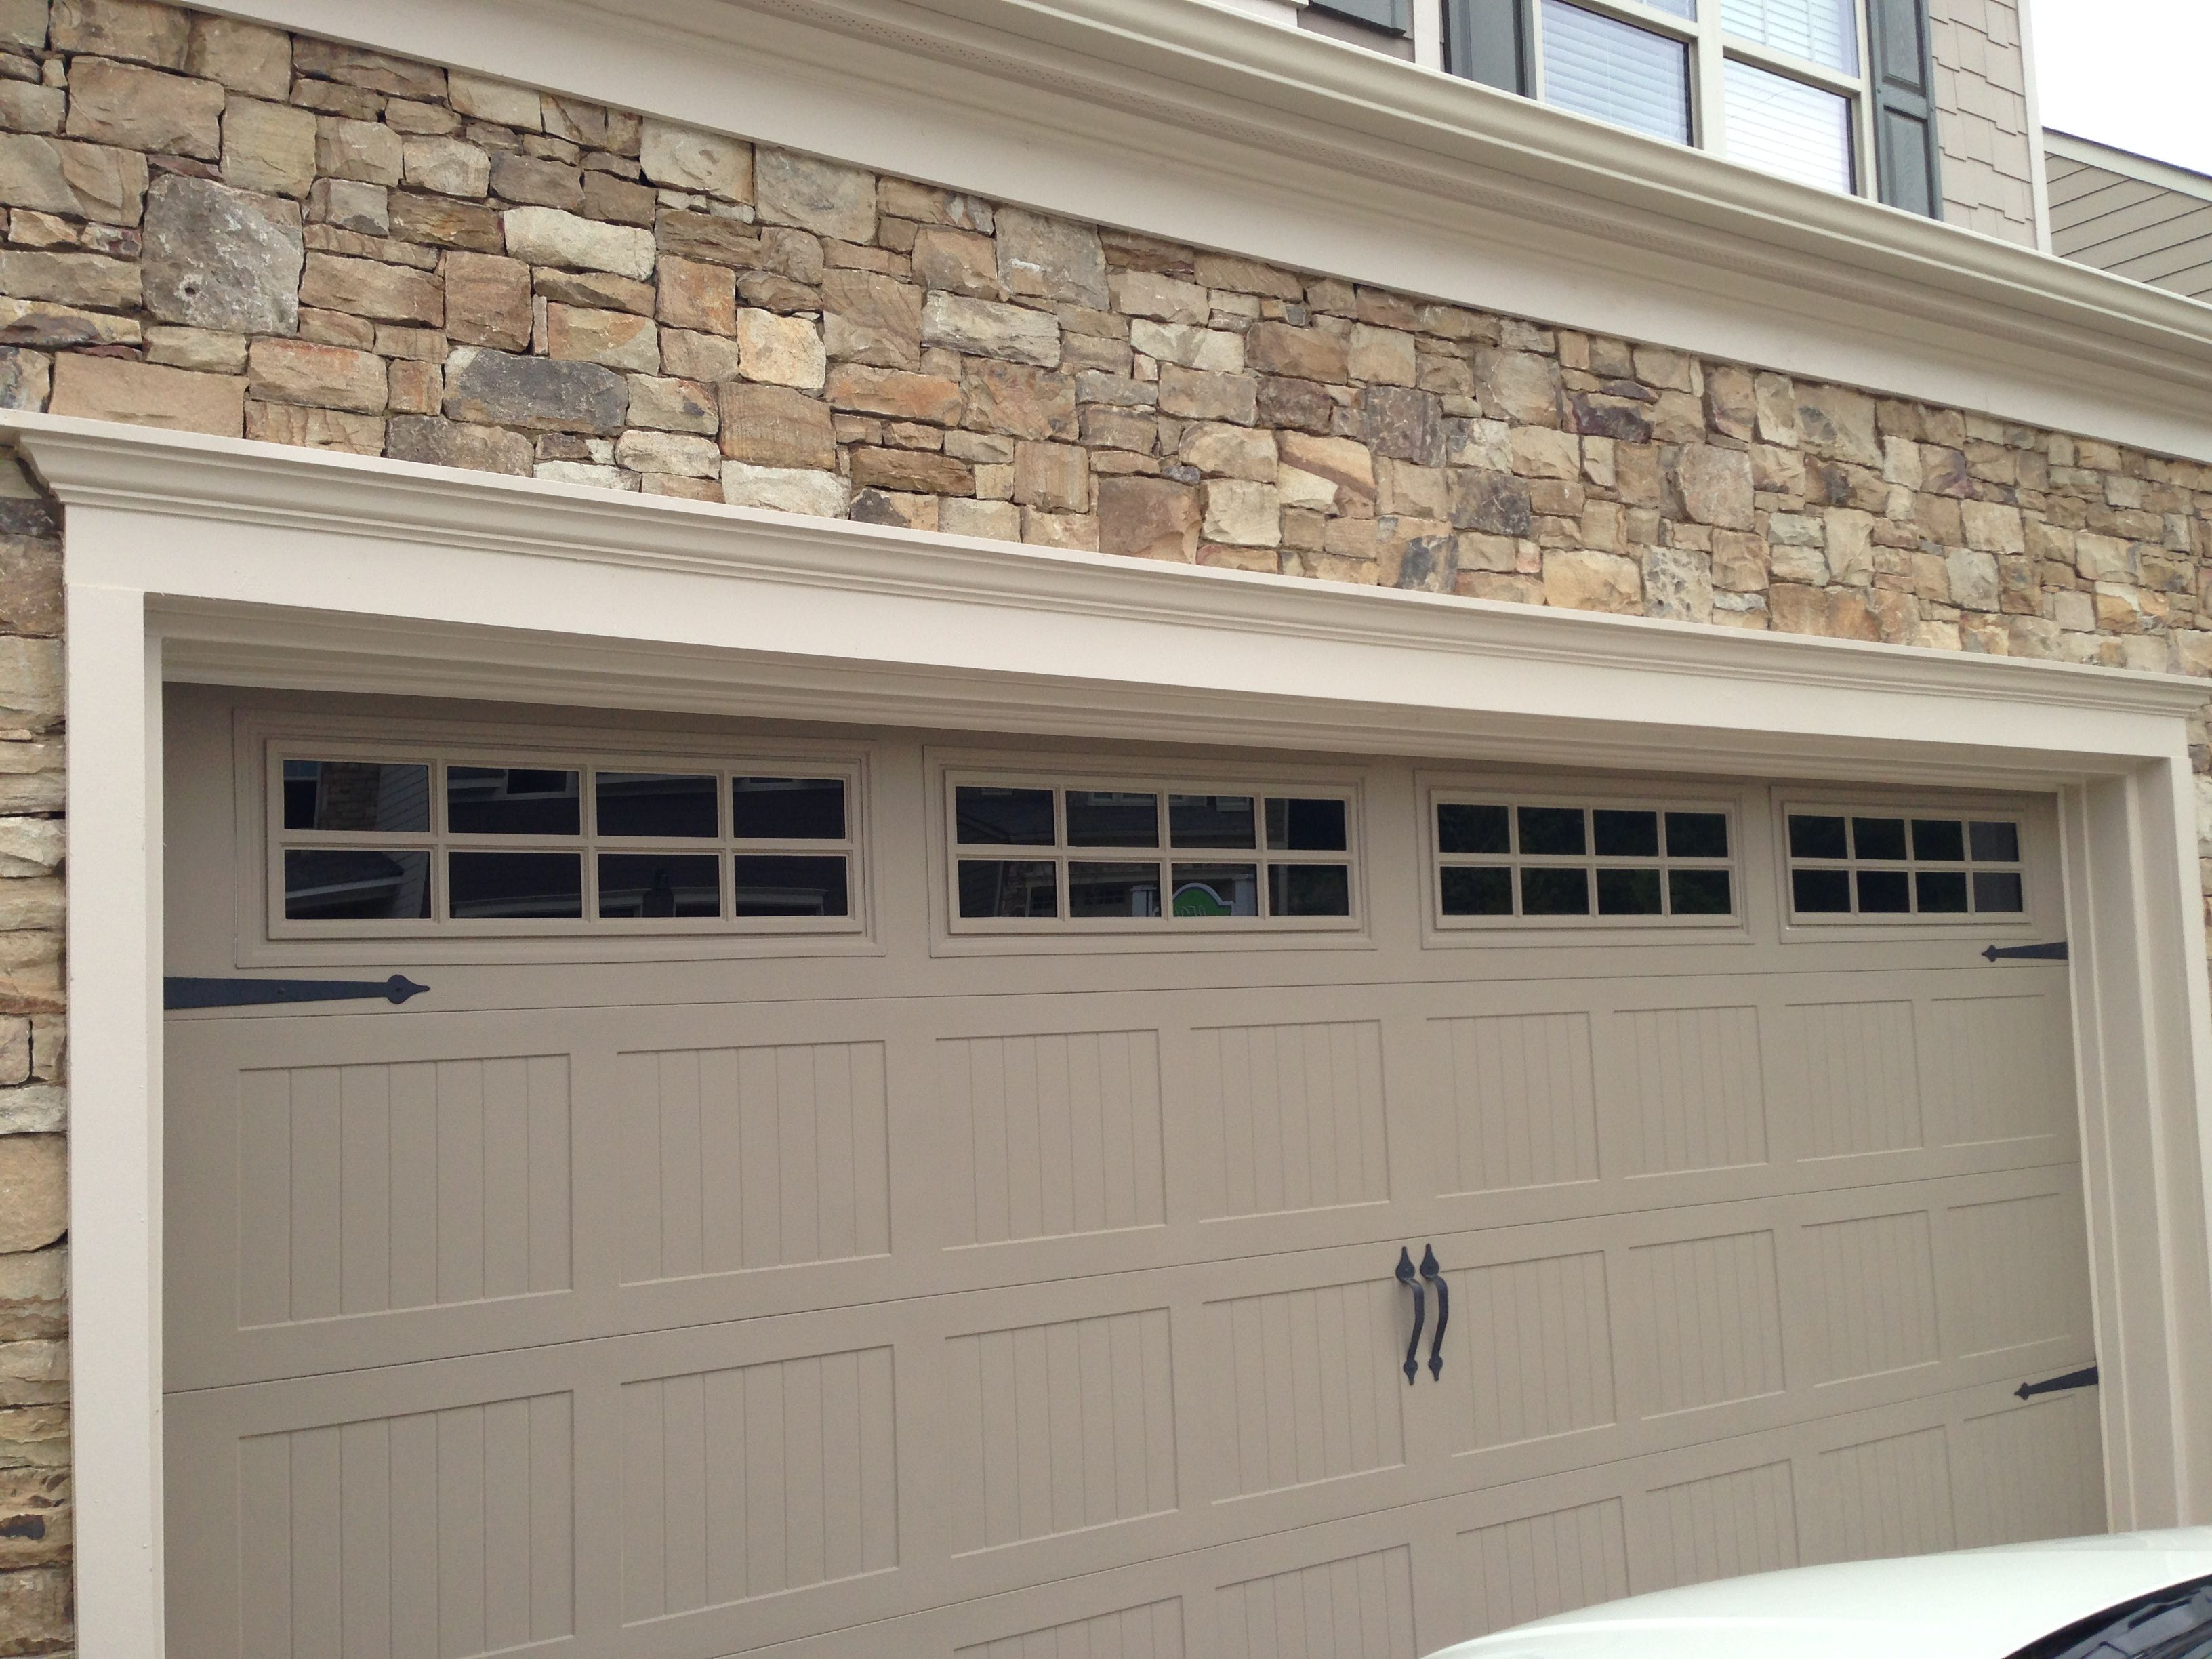 The Garage Door Is The Prefect Color To Go With The Brick